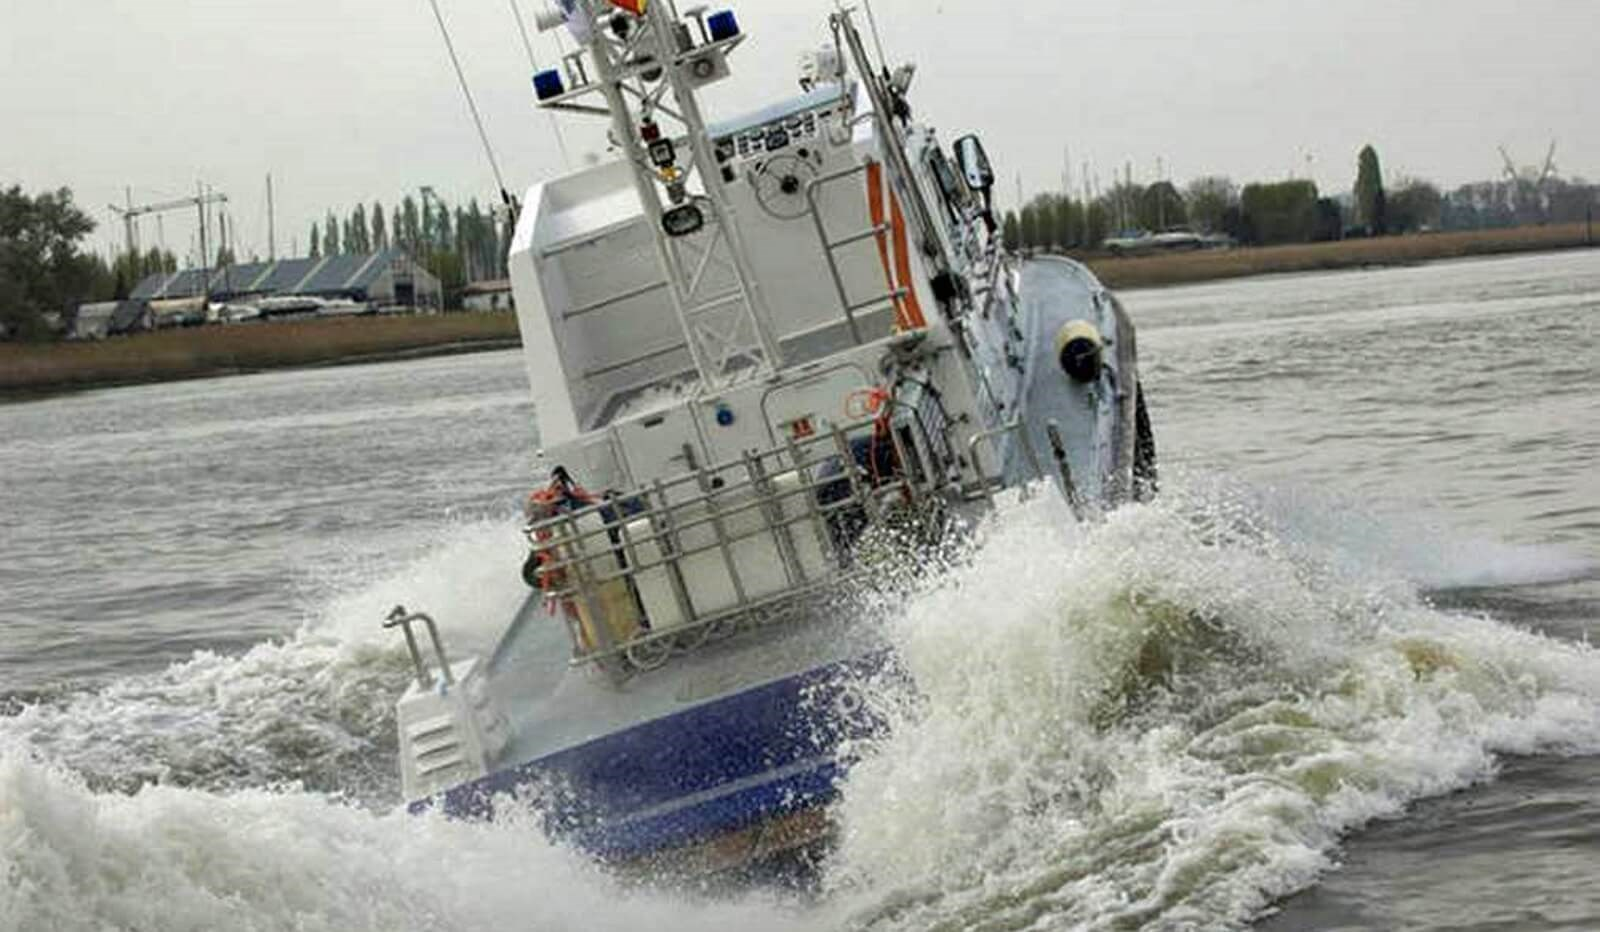 used police boat for sale 07591 (4)